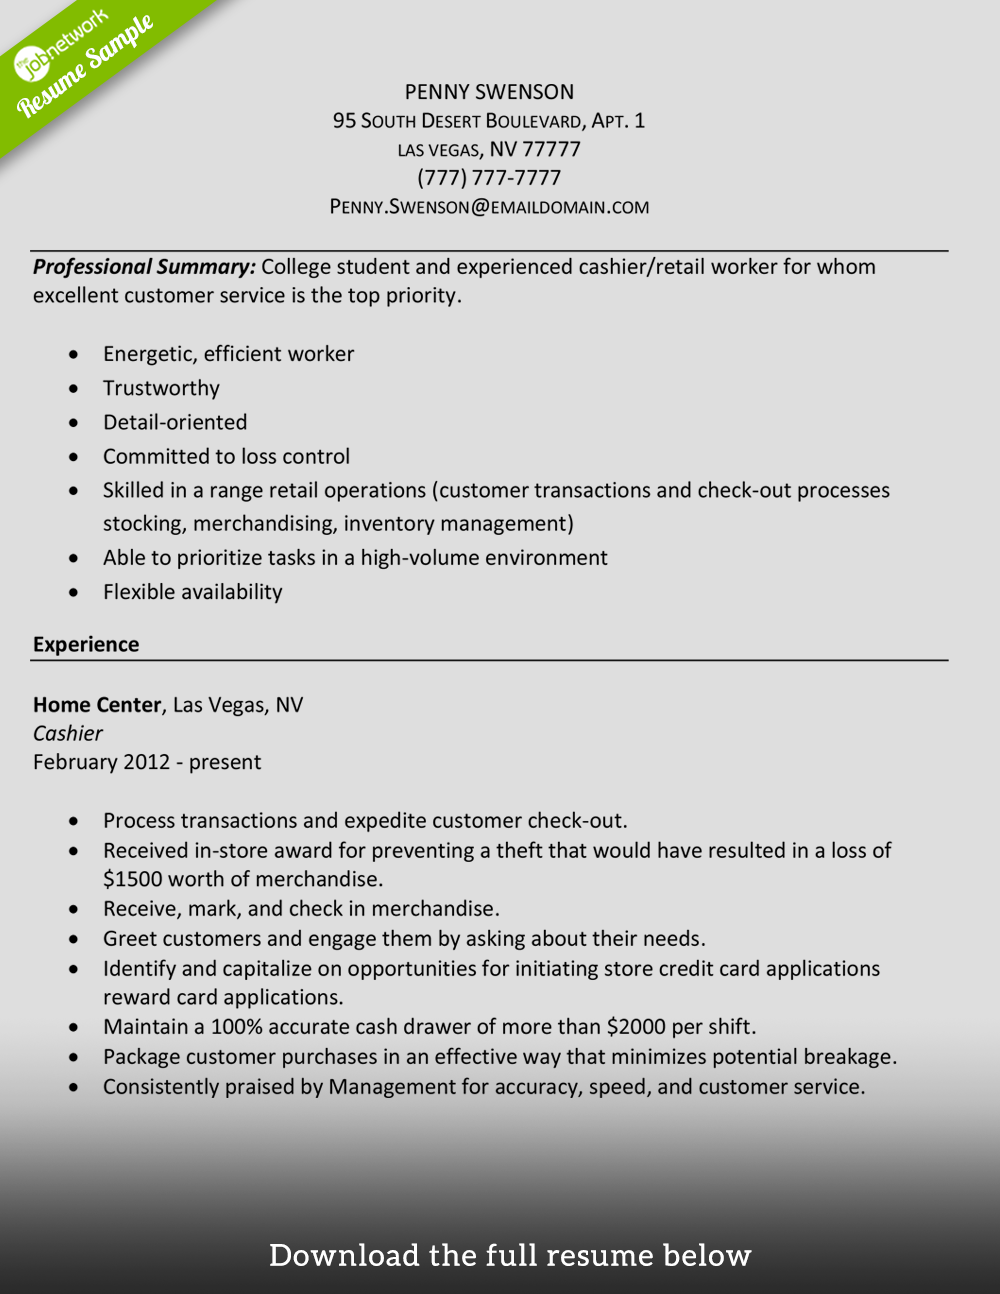 Cashier Resume Experienced In Retail  Cashier Customer Service Resume